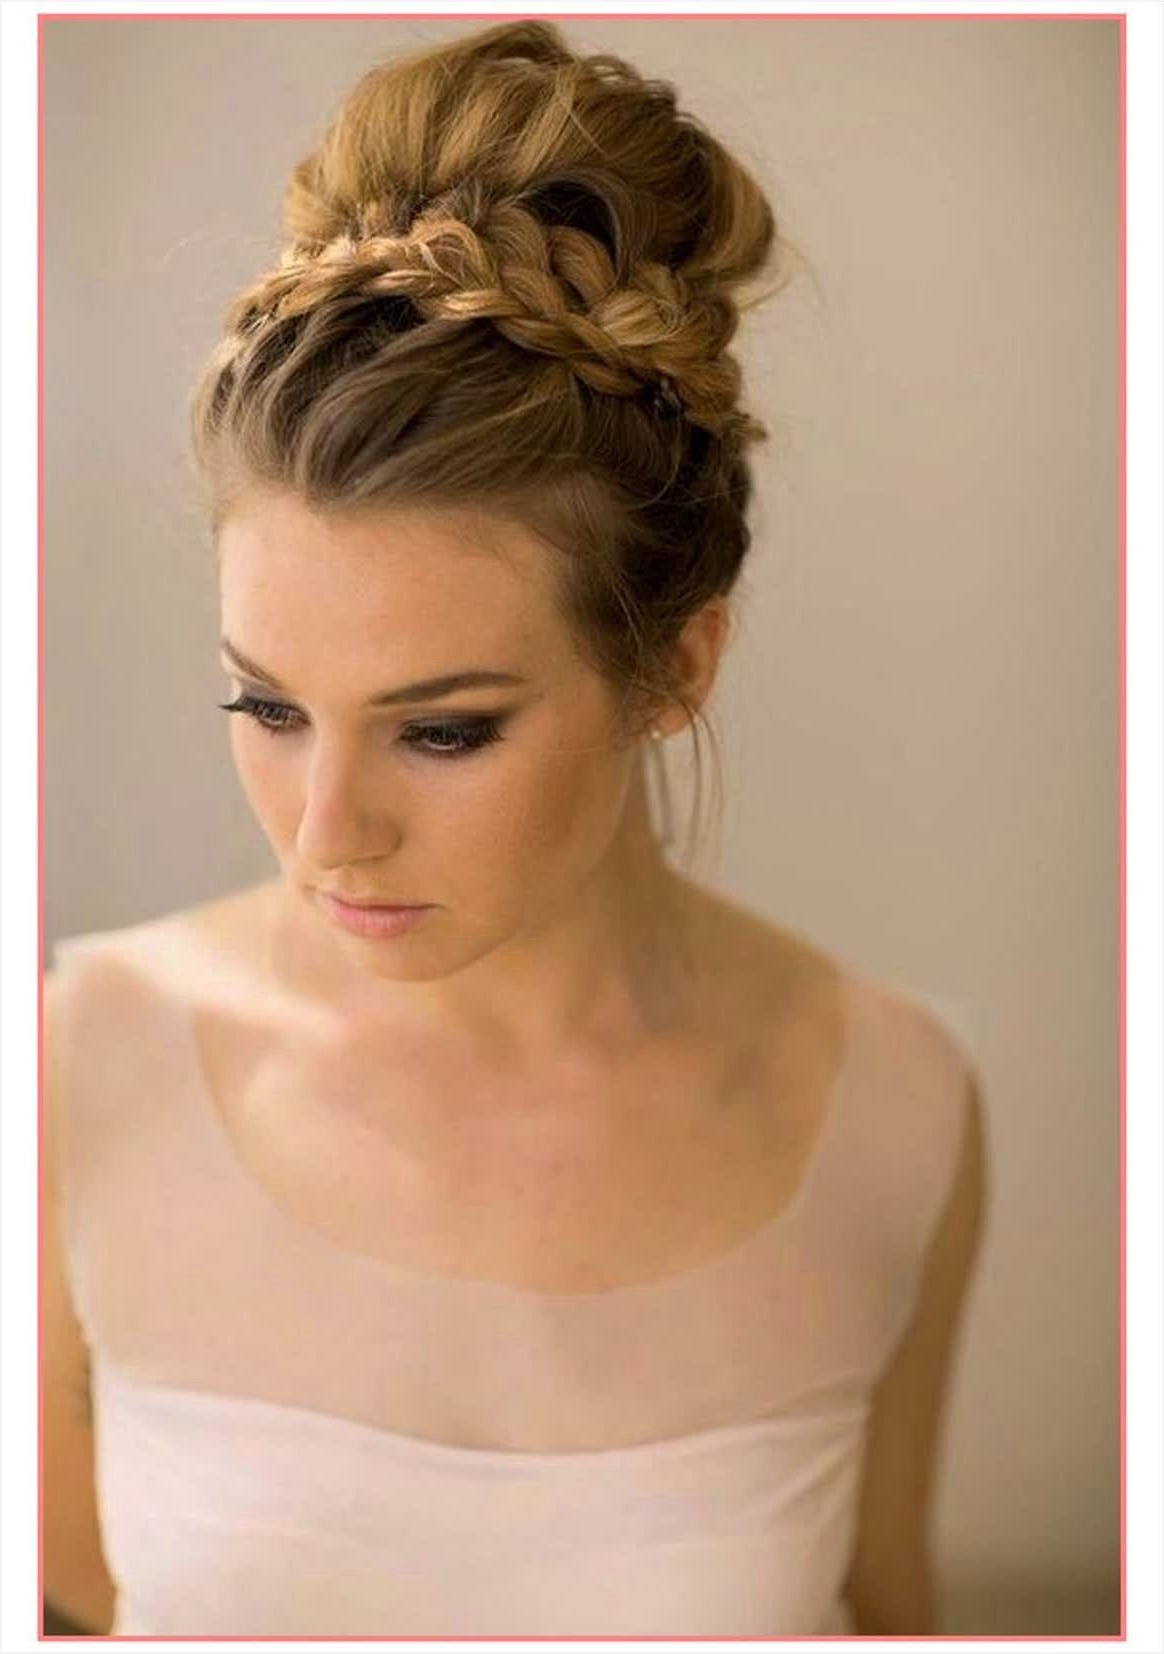 41 Cute Hairstyles For Wedding Guests 27 Best Wedding Guest For Cute Hairstyles For Short Hair For A Wedding (View 8 of 25)